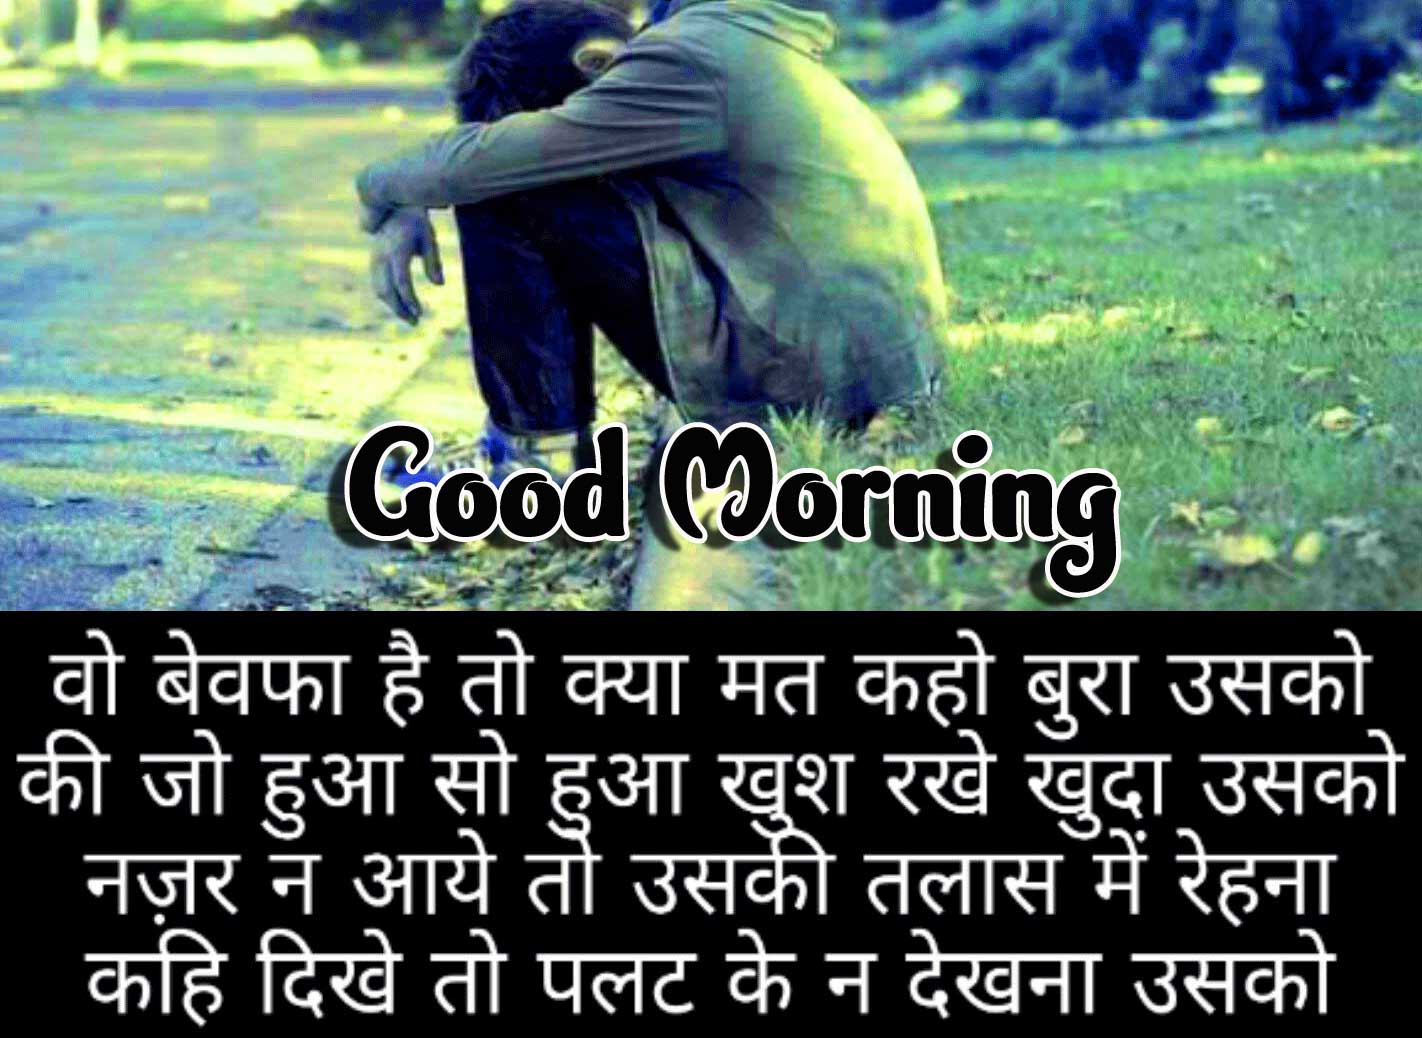 Hindi Quotes Shayari Good Morning Images 93